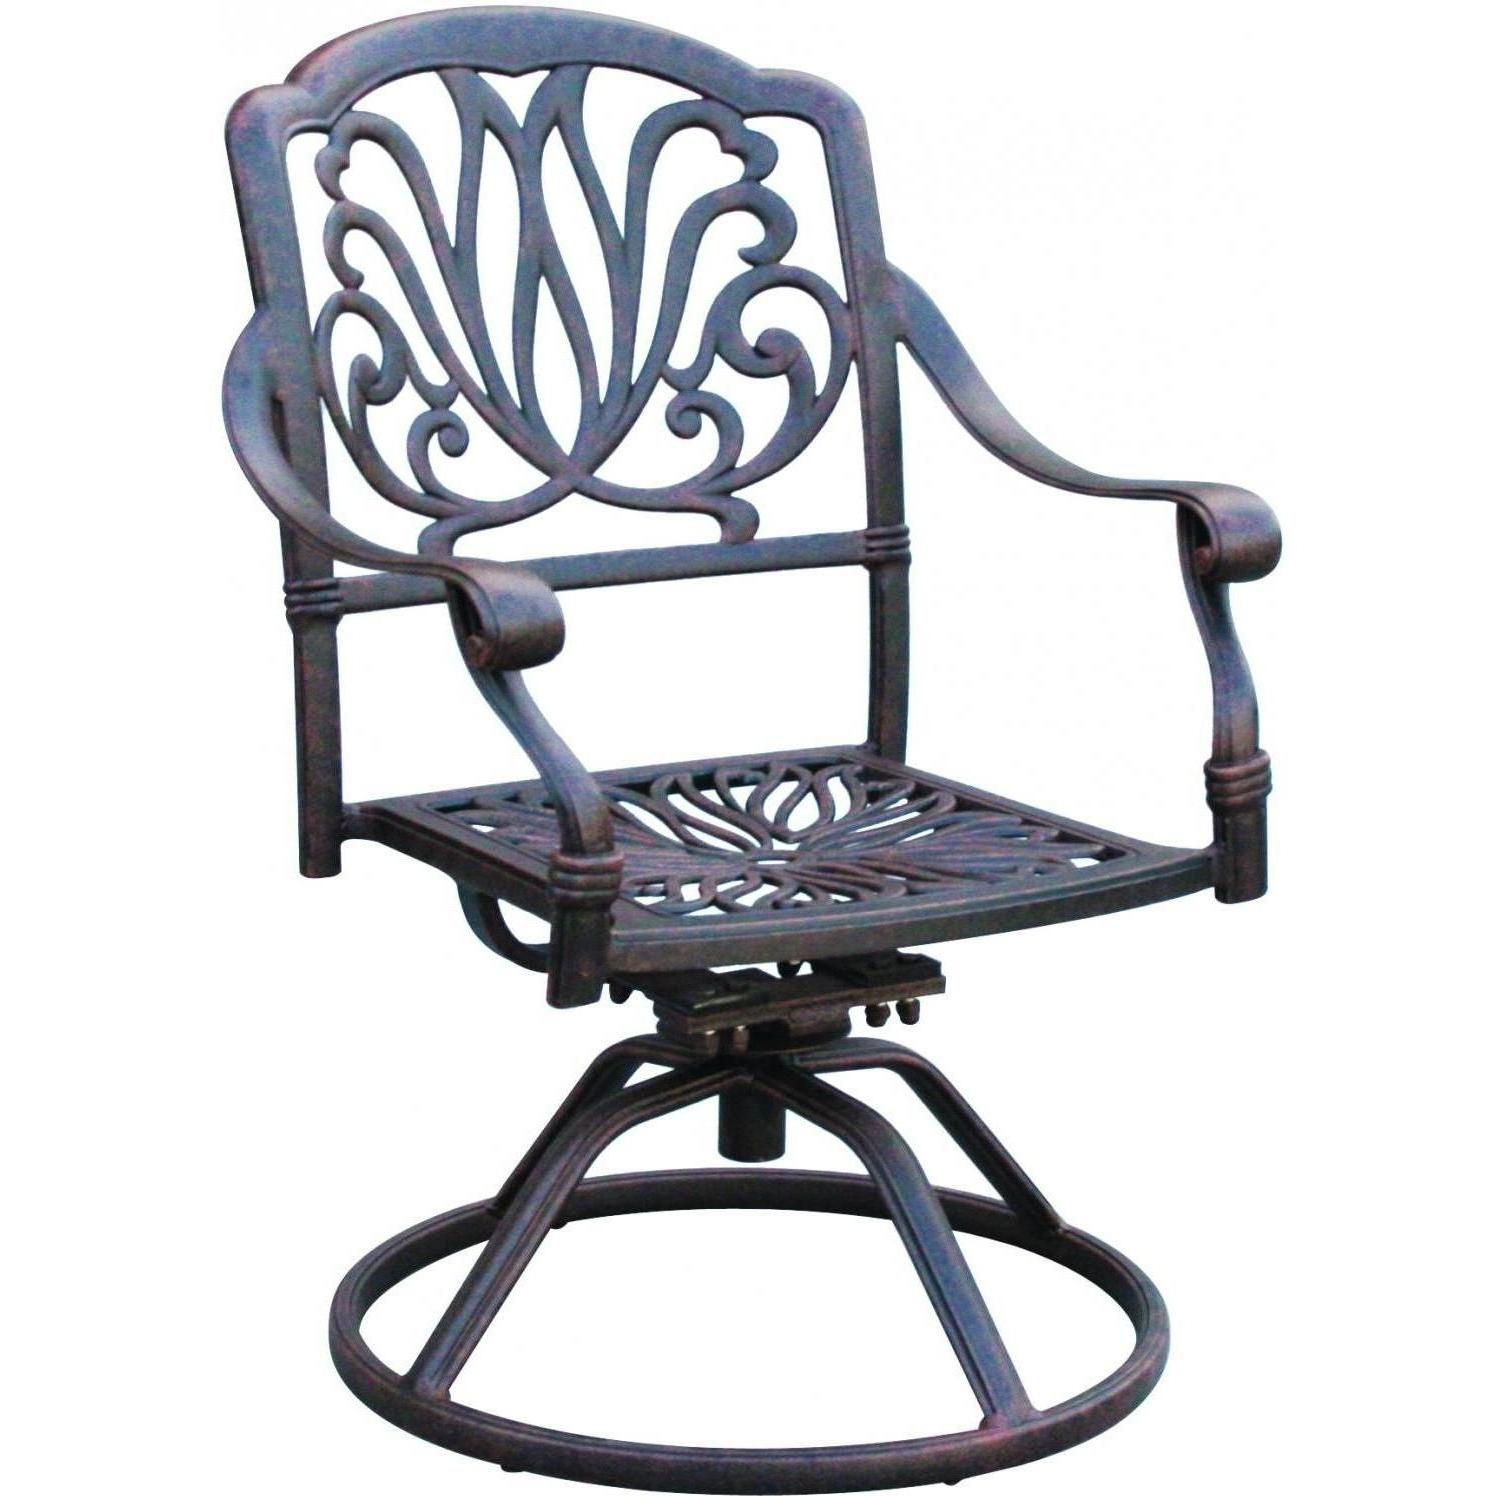 Iron Rocking Patio Chairs With Regard To Best And Newest Darlee Elisabeth Cast Aluminum Patio Swivel Rocker Dining Chair (View 8 of 20)